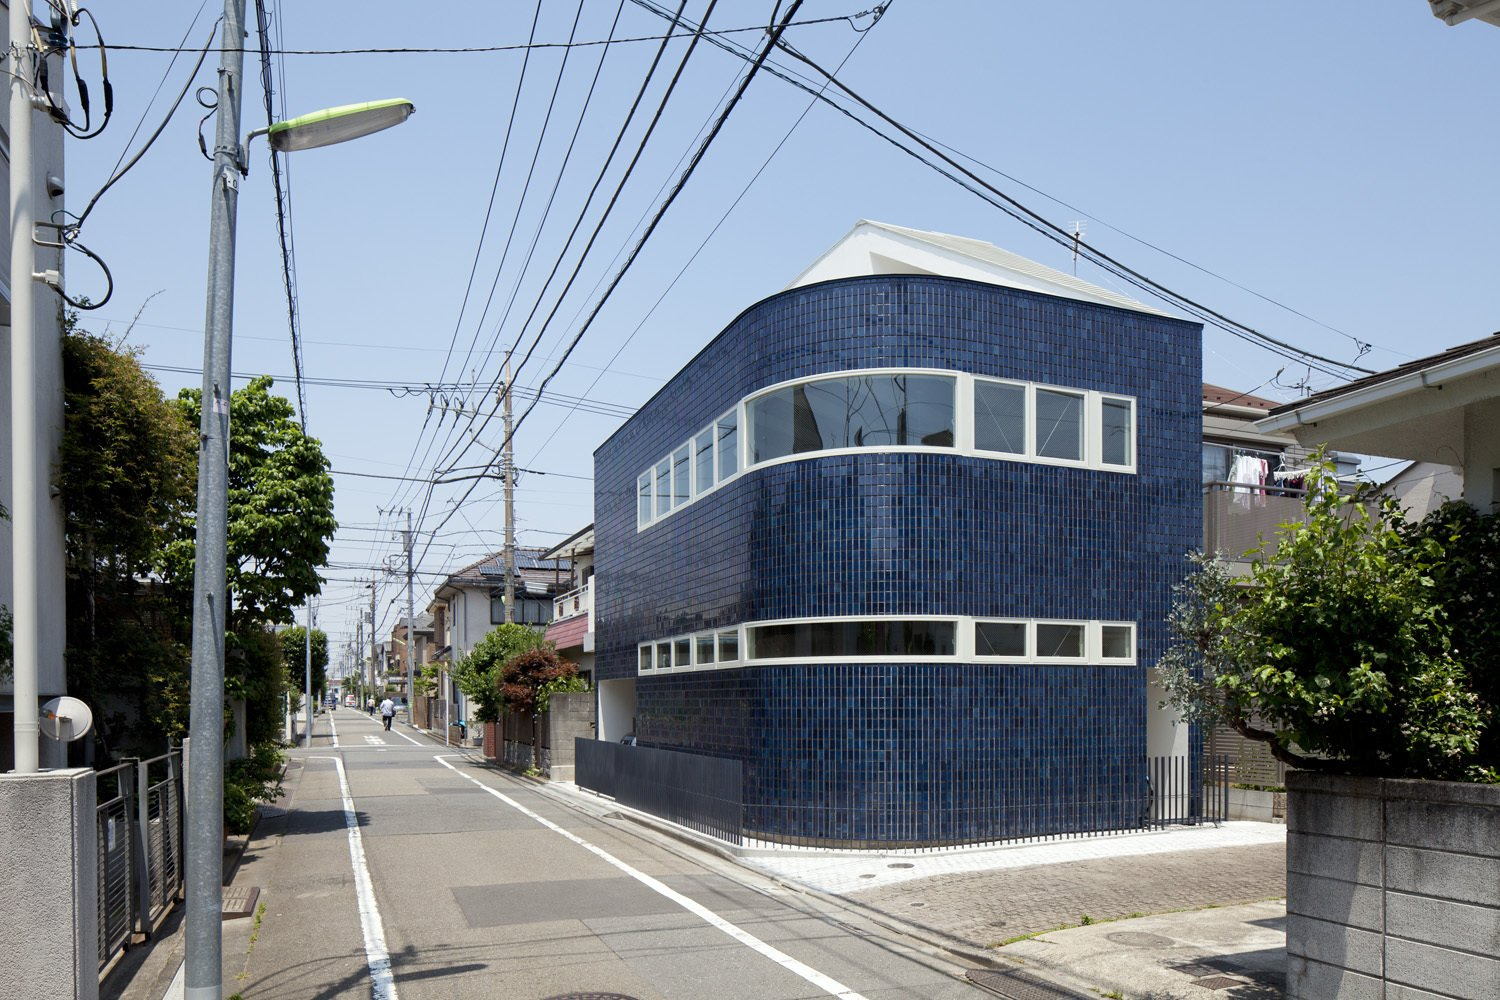 """The blue porcelain tiles covering the house's exterior are typical of commercial buildings of earlier decades. """"It was intended to invoke nostalgia of the past and newness at the same time,"""" lead architect Akio Nakasa says.  Unabashedly Strange Houses in Japan from Bold Japanese Houses"""